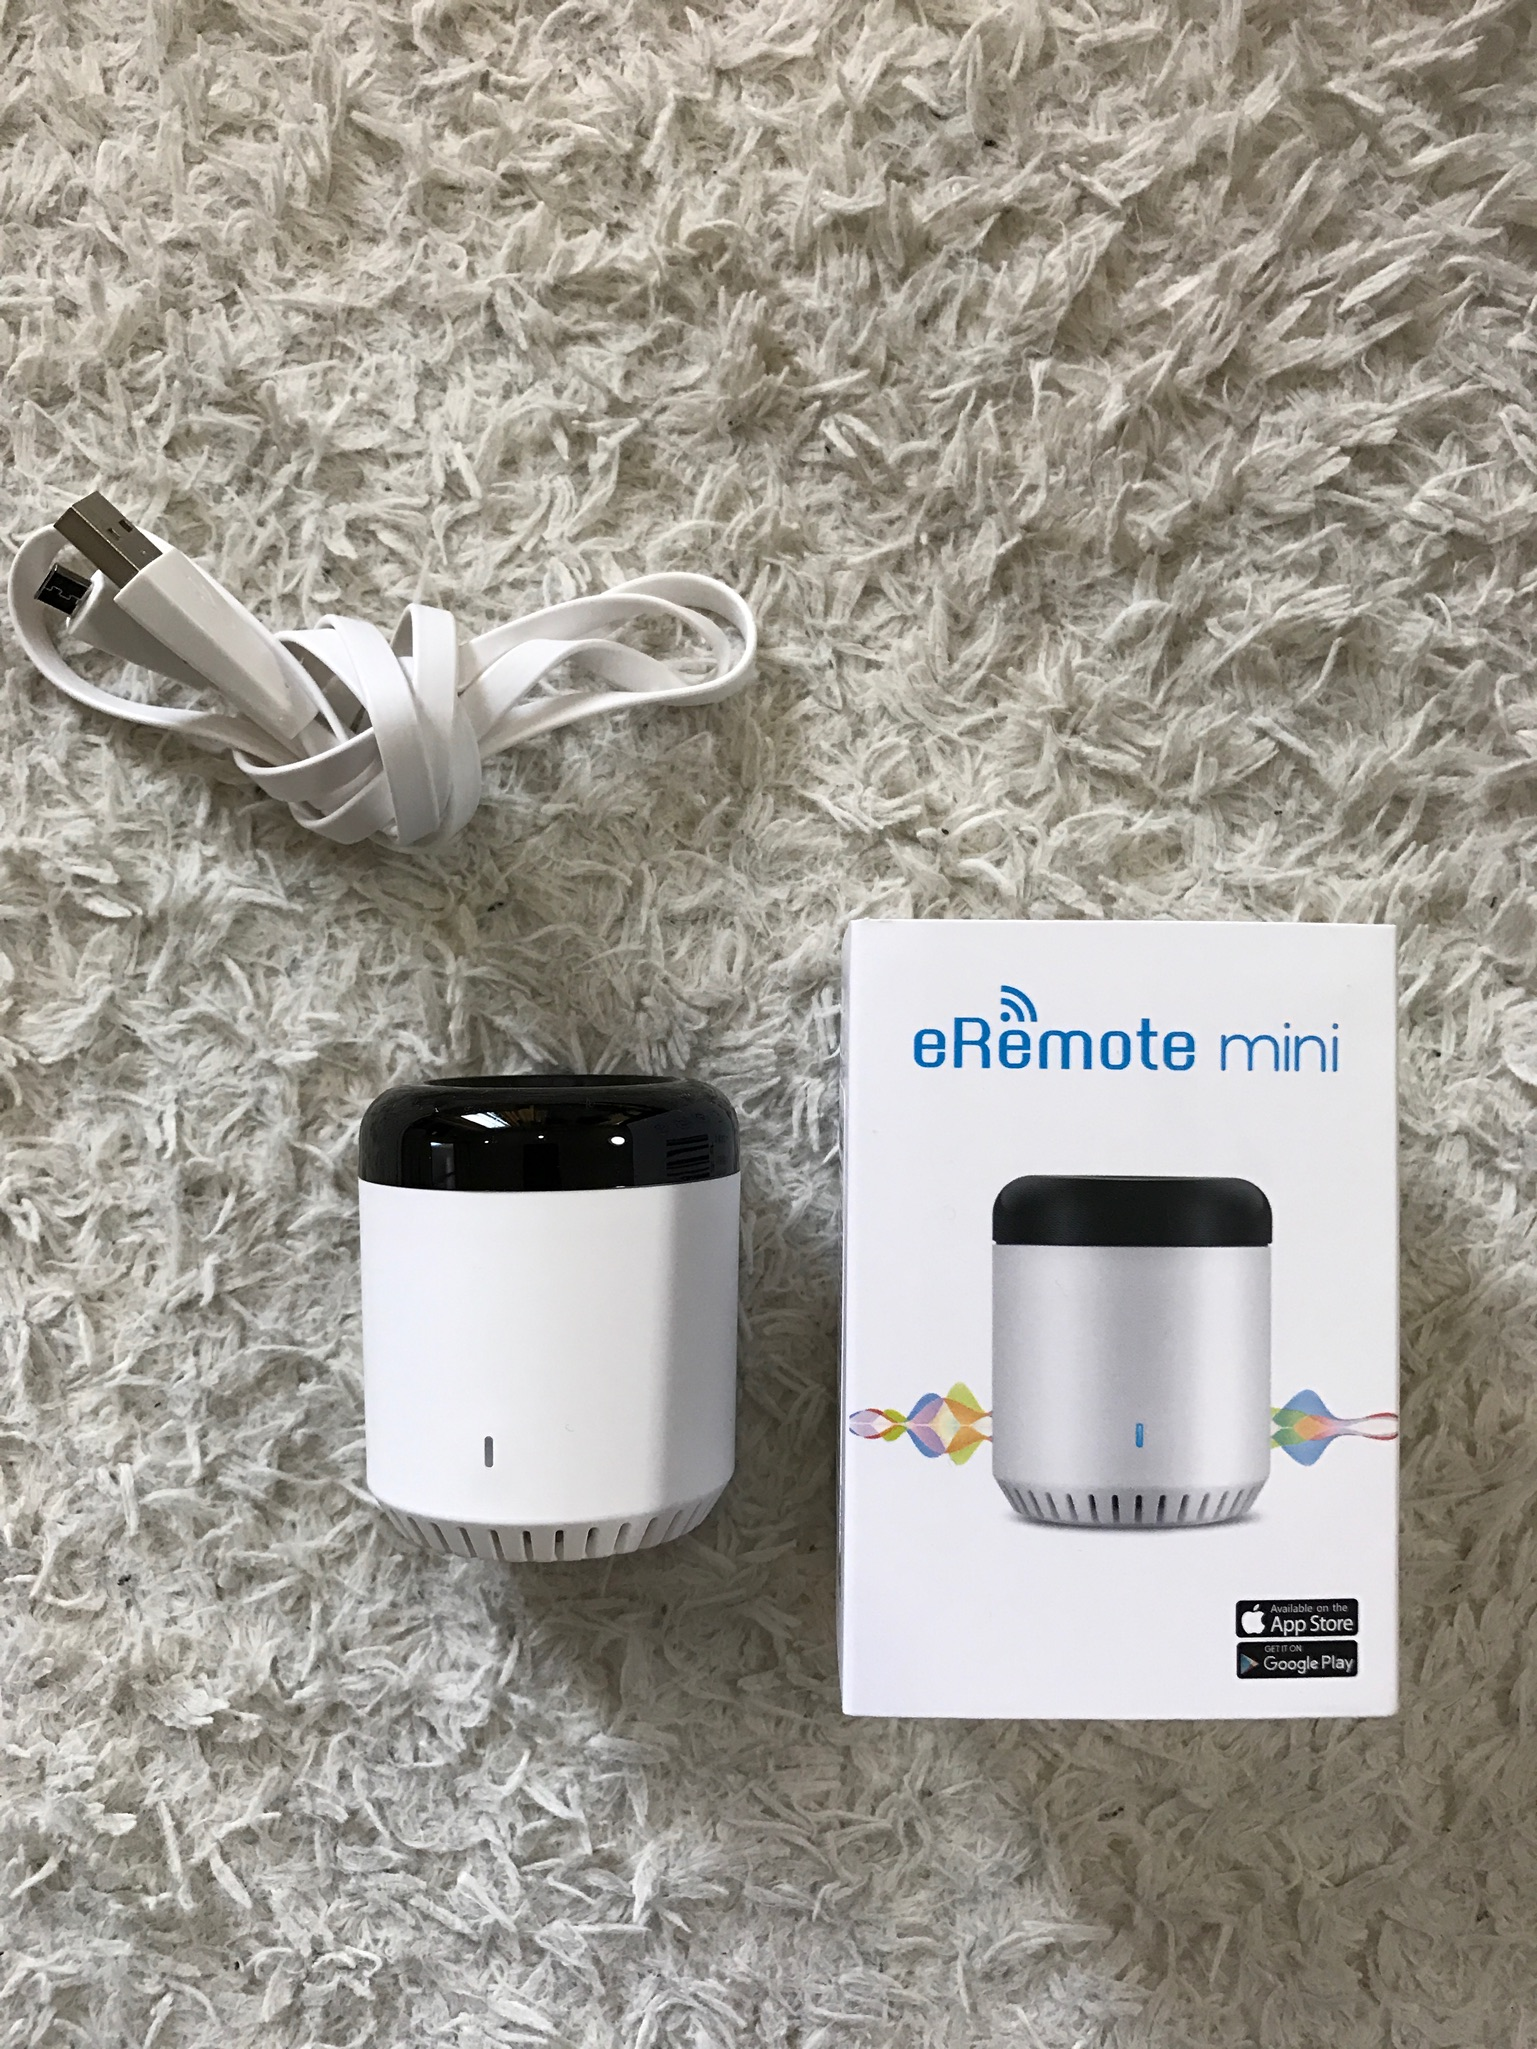 eRemote mini 画像